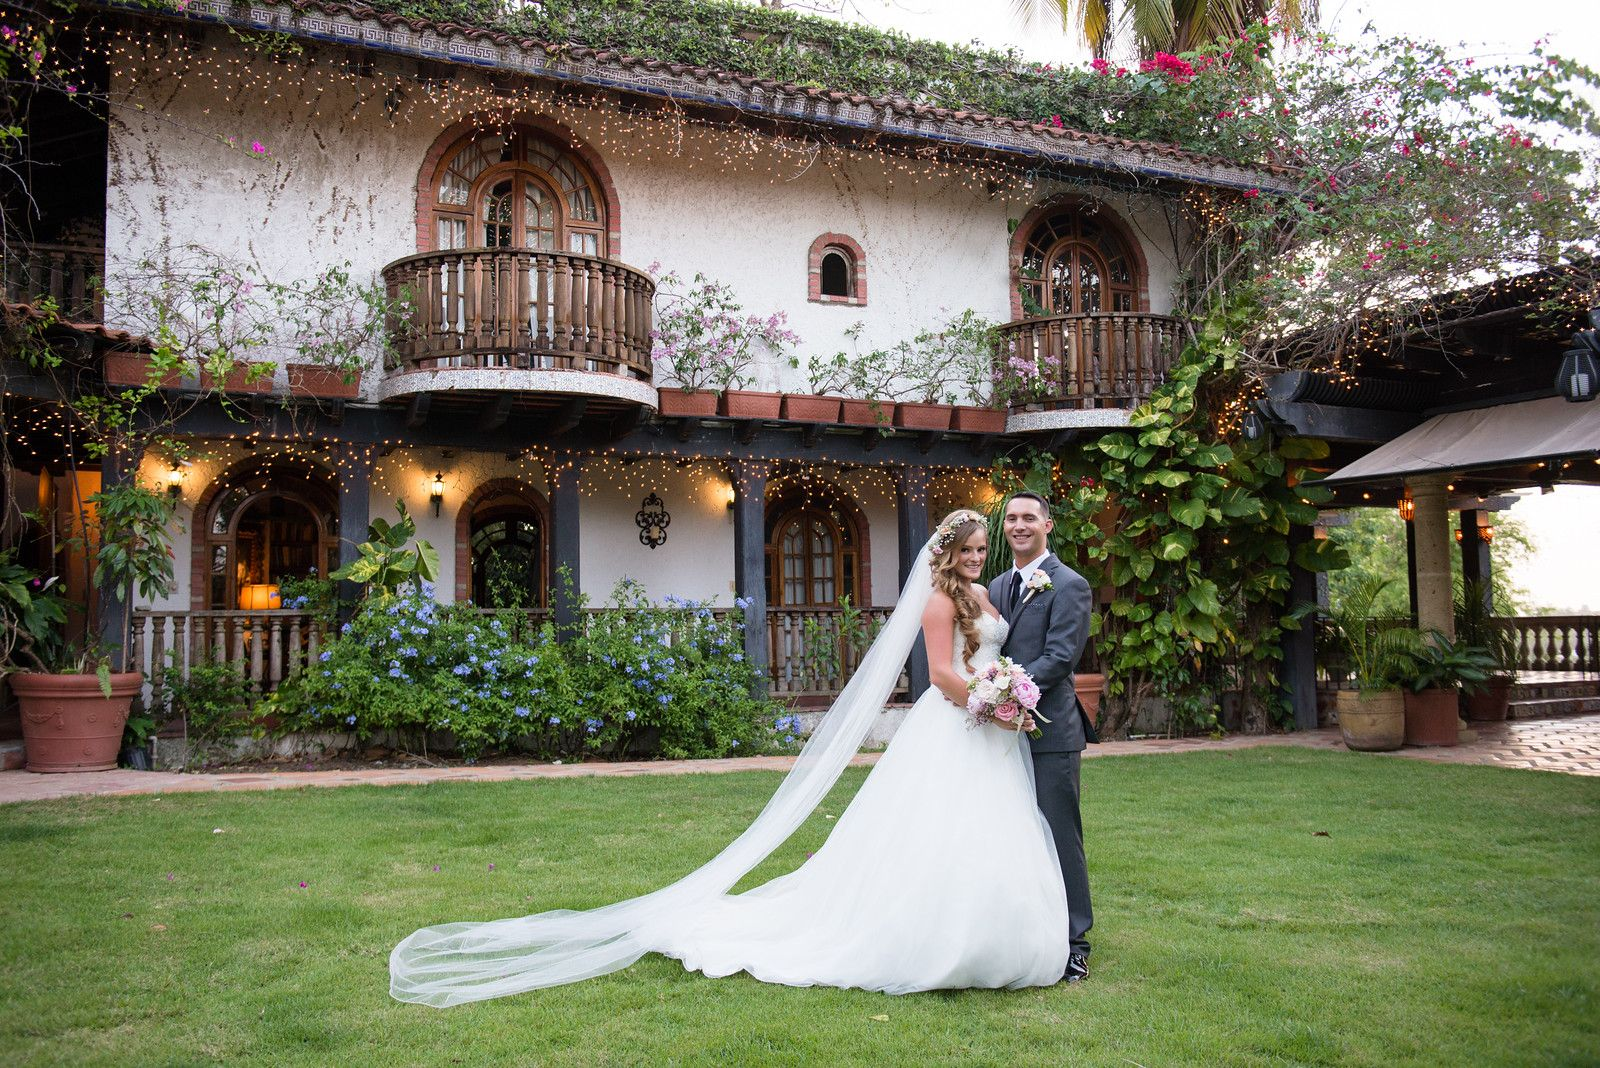 Hacienda wedding with soft color decor ideas | Inspiring post by Bridestory.com, everyone should read about One Couple's Dreamy Wedding at a Puerto Rican Hacienda on http://www.bridestory.com/blog/one-couples-dreamy-wedding-at-a-puerto-rican-hacienda